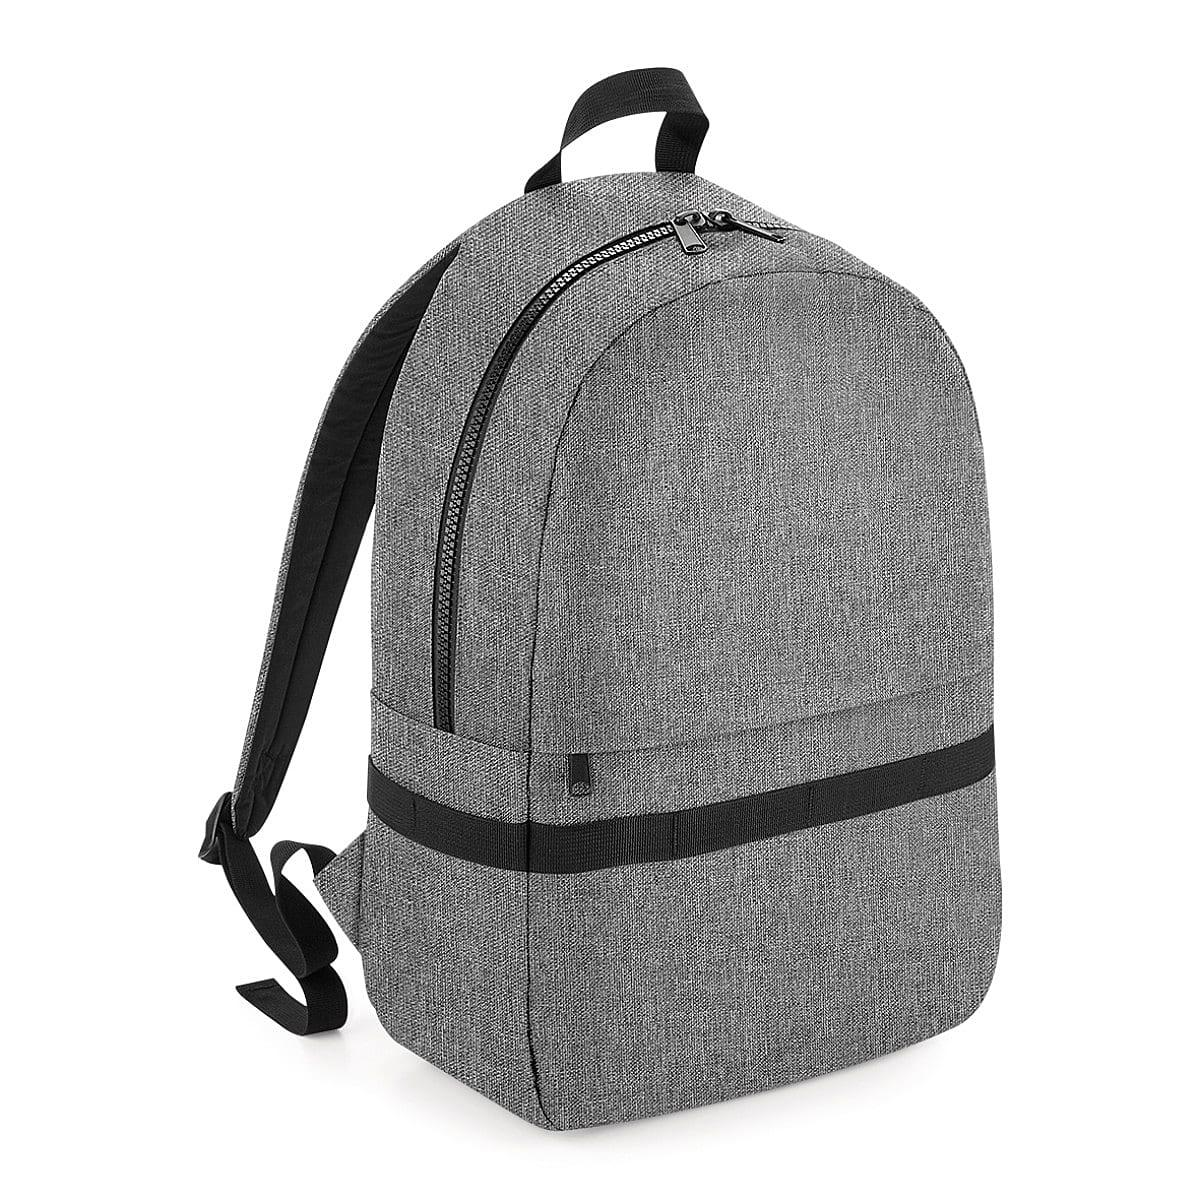 Bagbase Modulr 20 Litre Backpack in Grey Marl (Product Code: BG240)